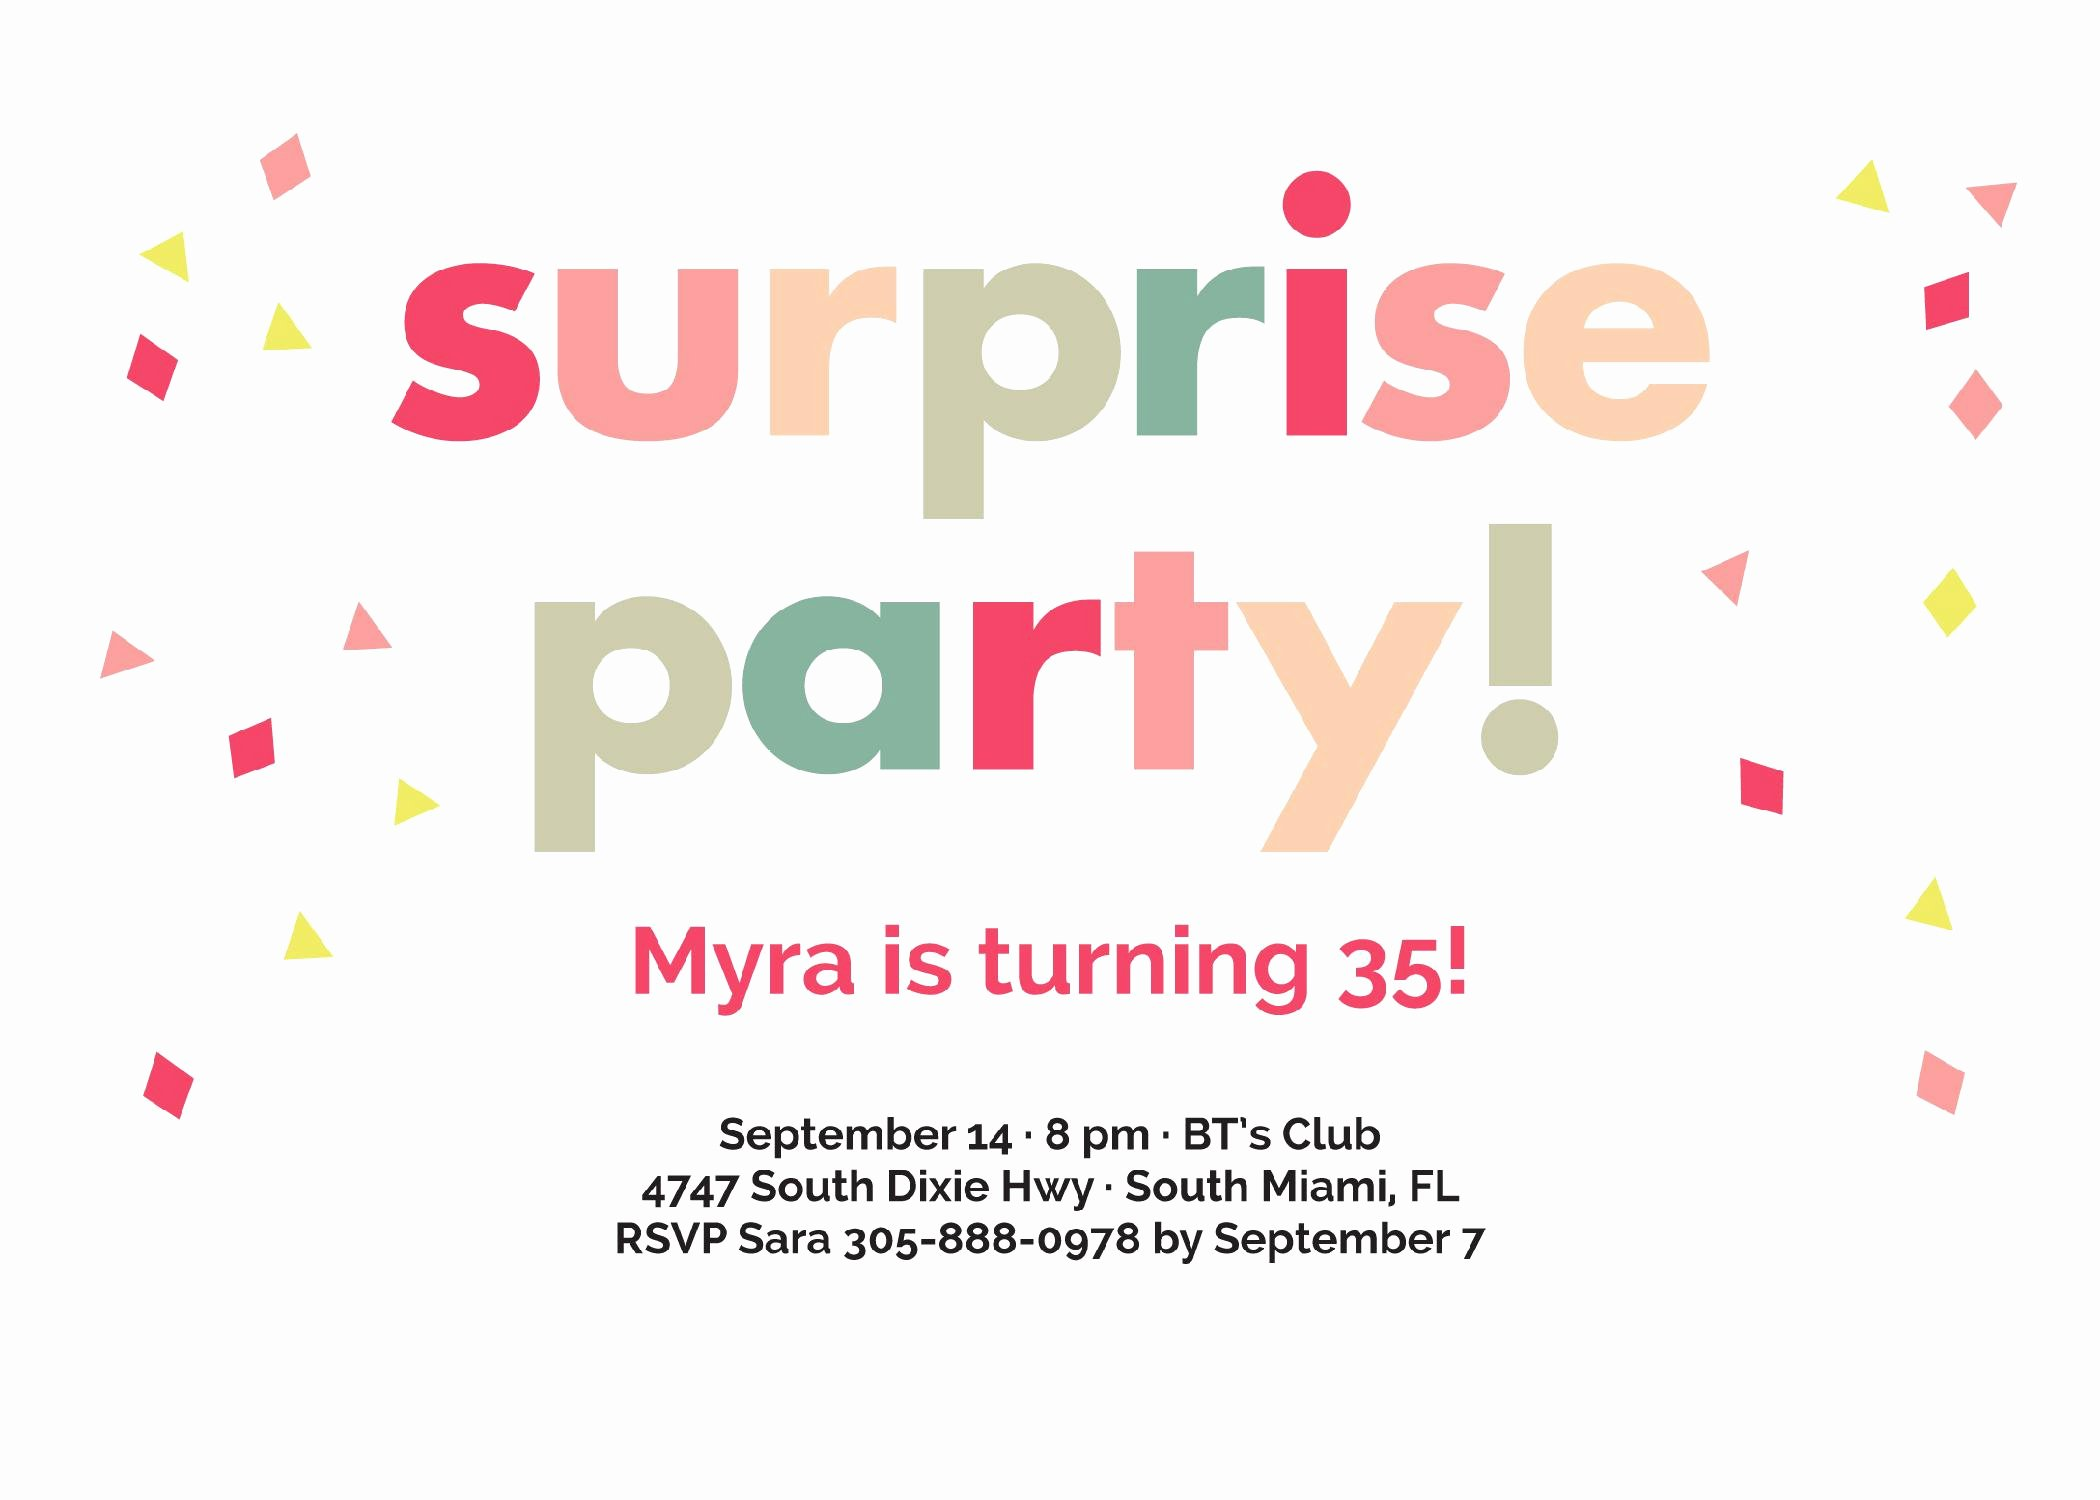 Surprise Party Invitation Template Inspirational Birthday Party Surprise Birthday Invitations Card Invitation Templates Card Invitation